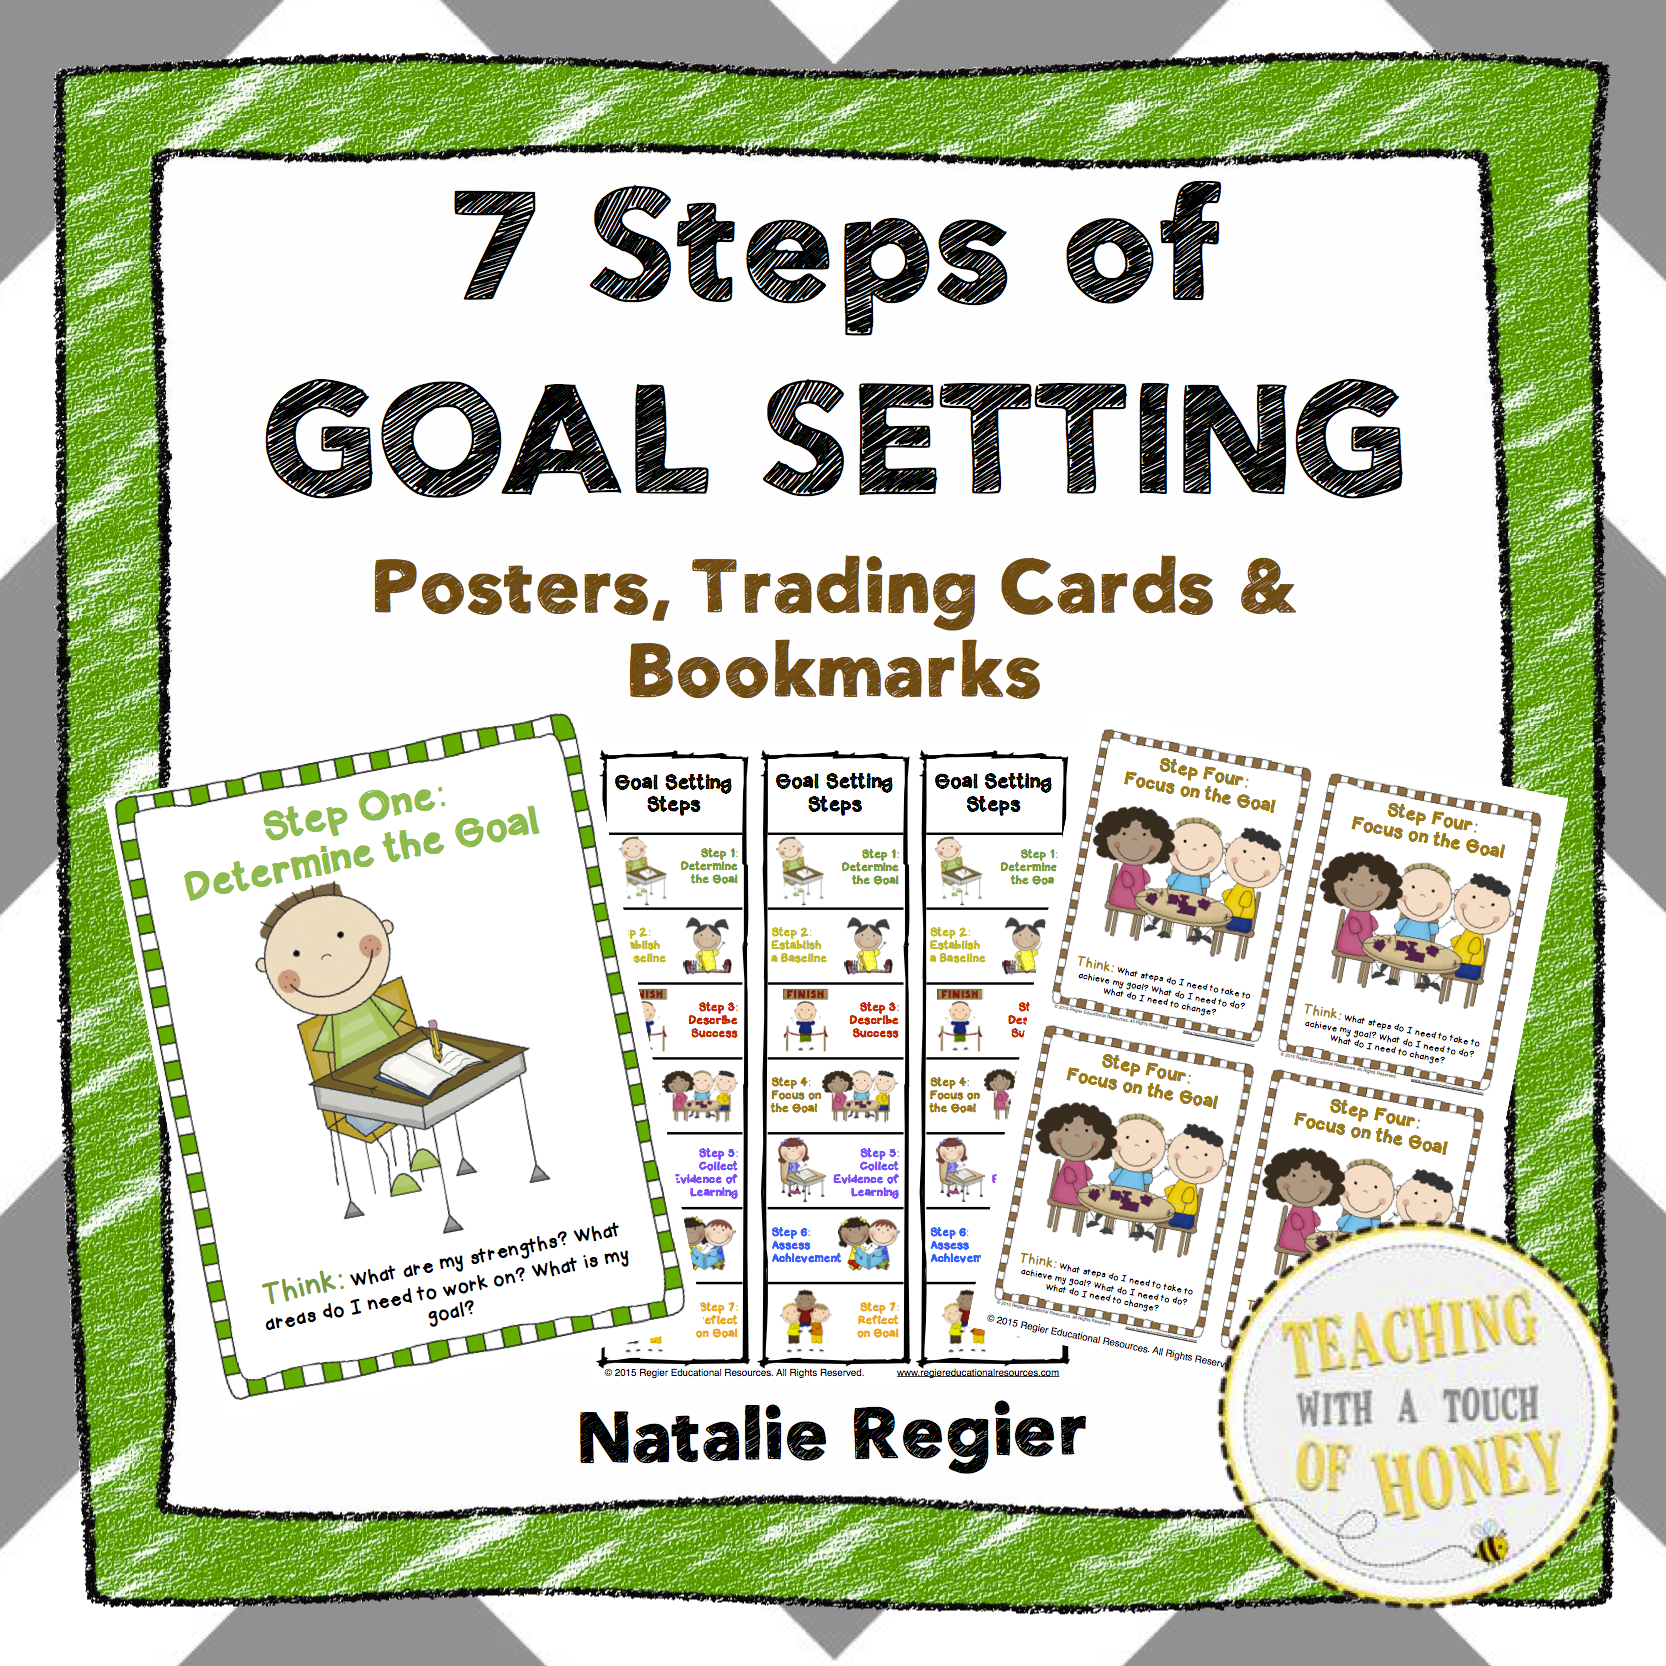 Get Your Free Copy Of 7 Steps Of Goal Setting Posters